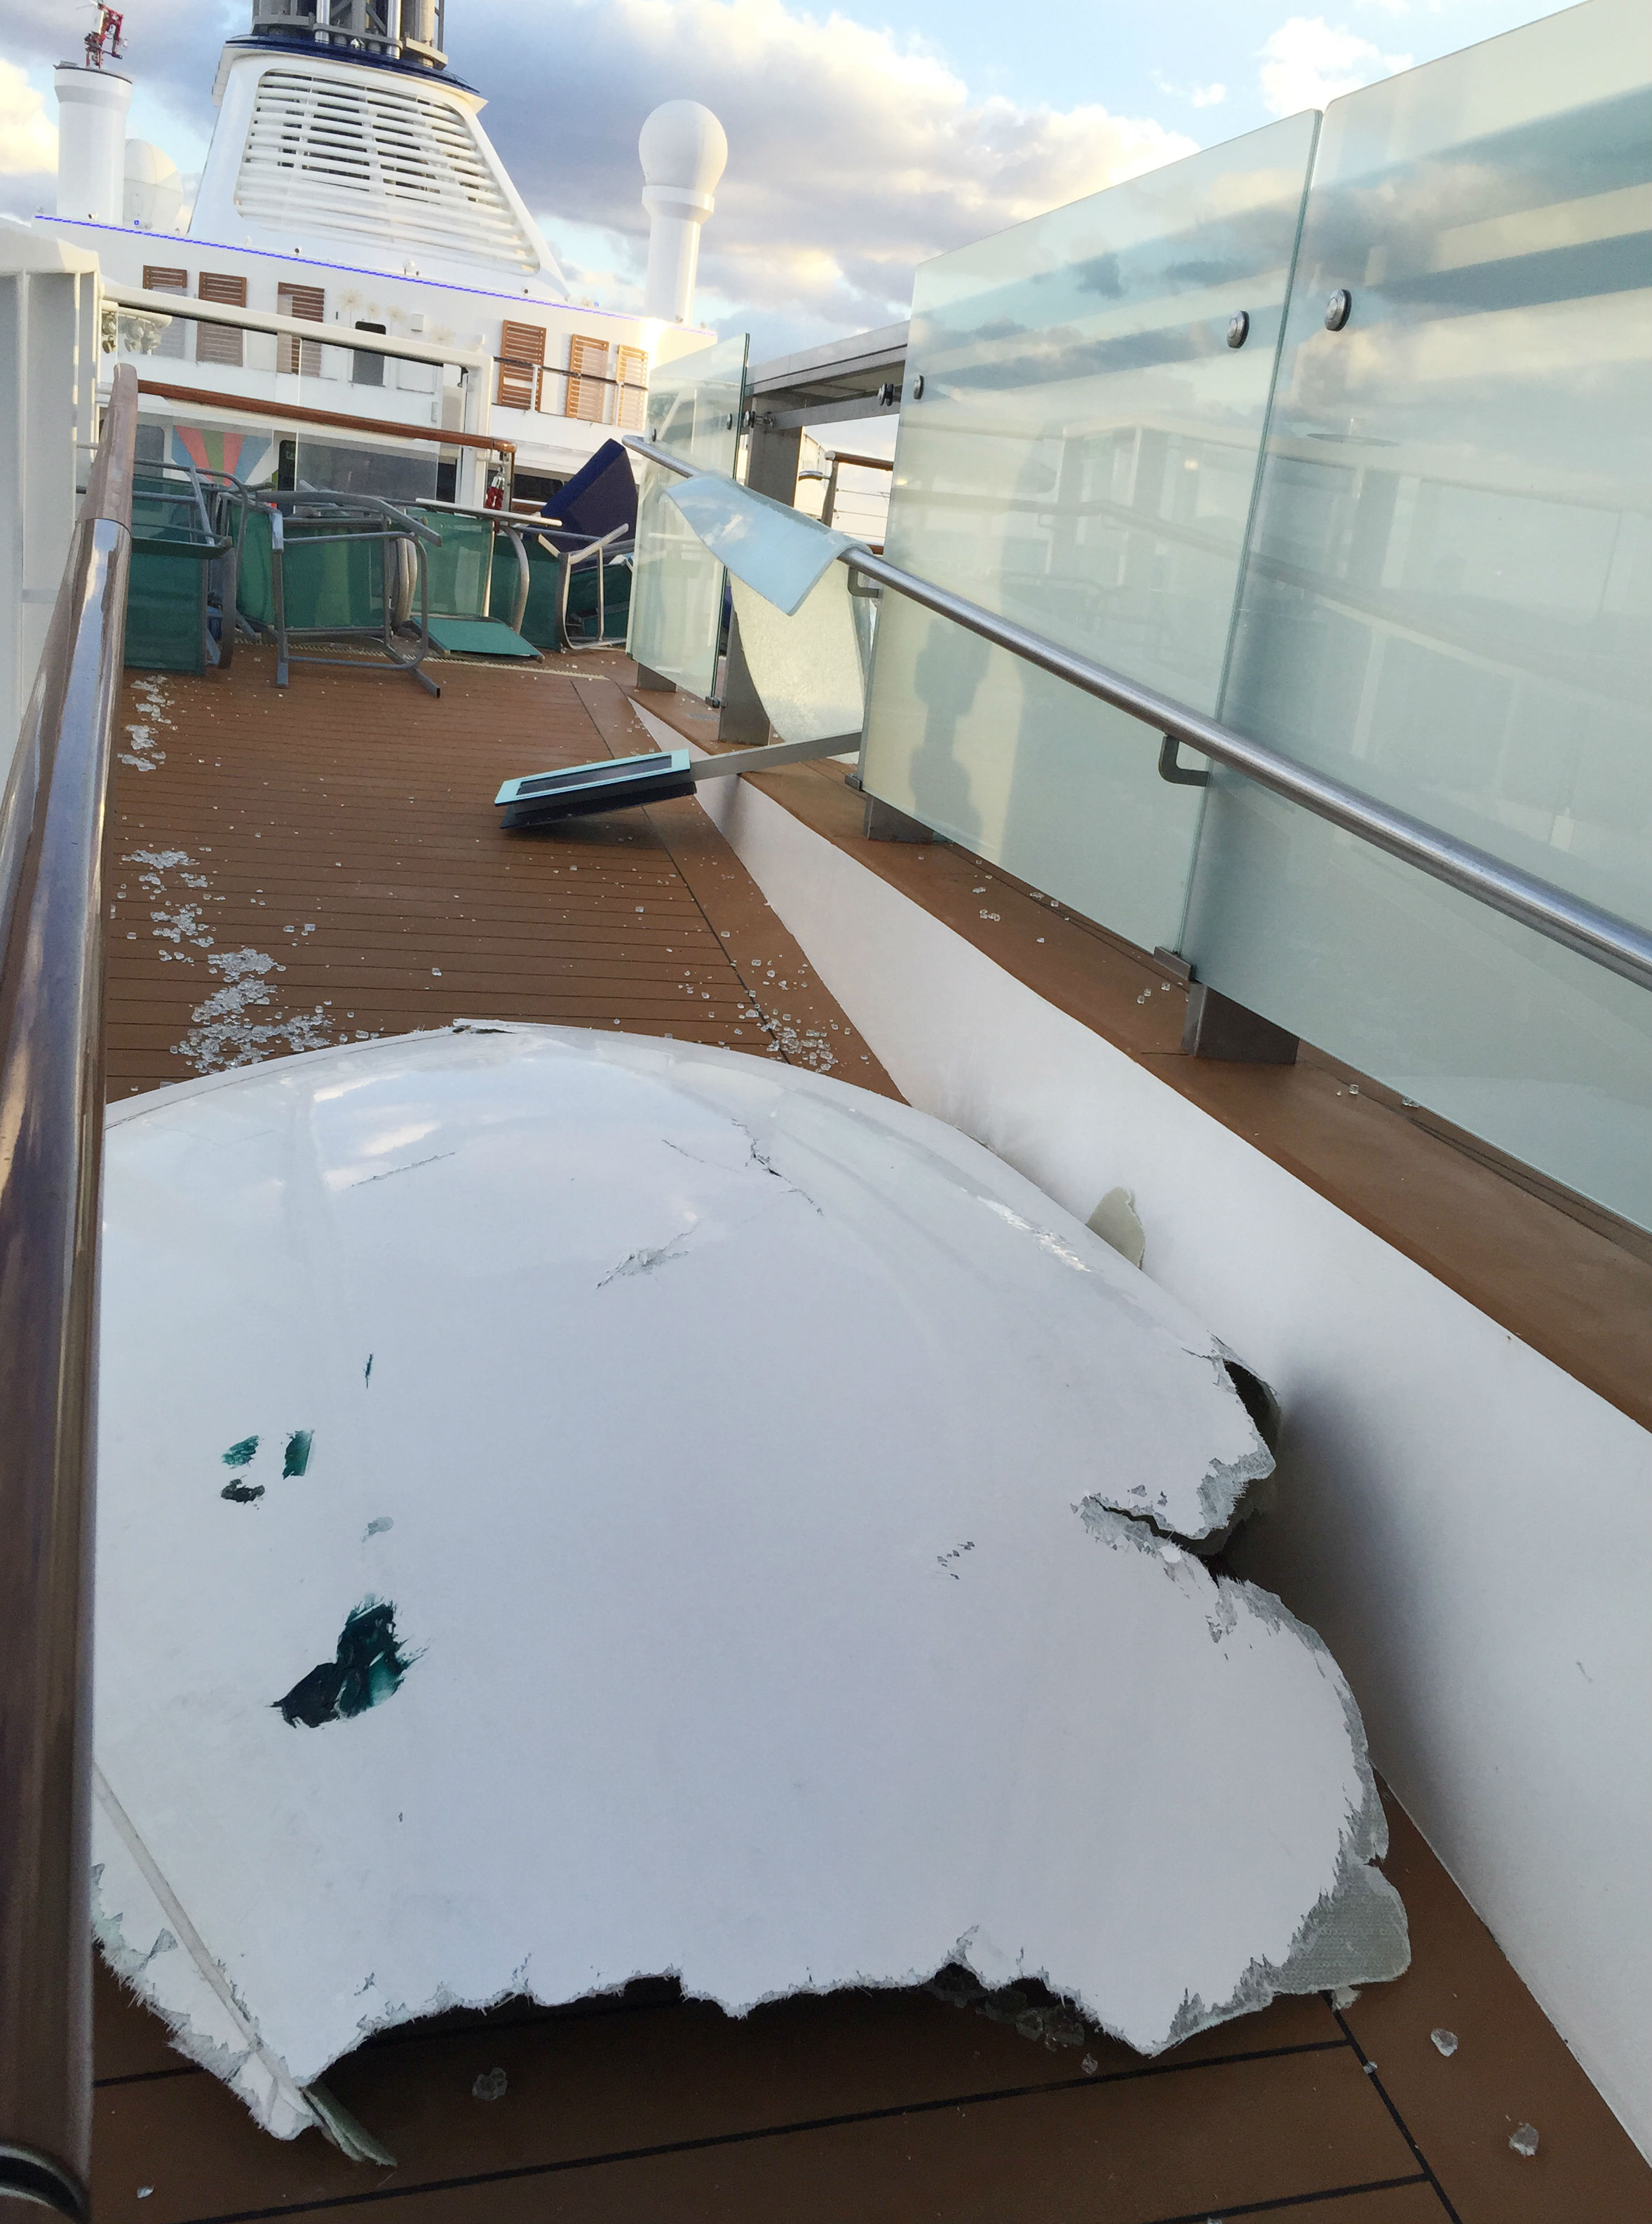 Royal Caribbean Cruise Ship Caught In Atlantic Storm To